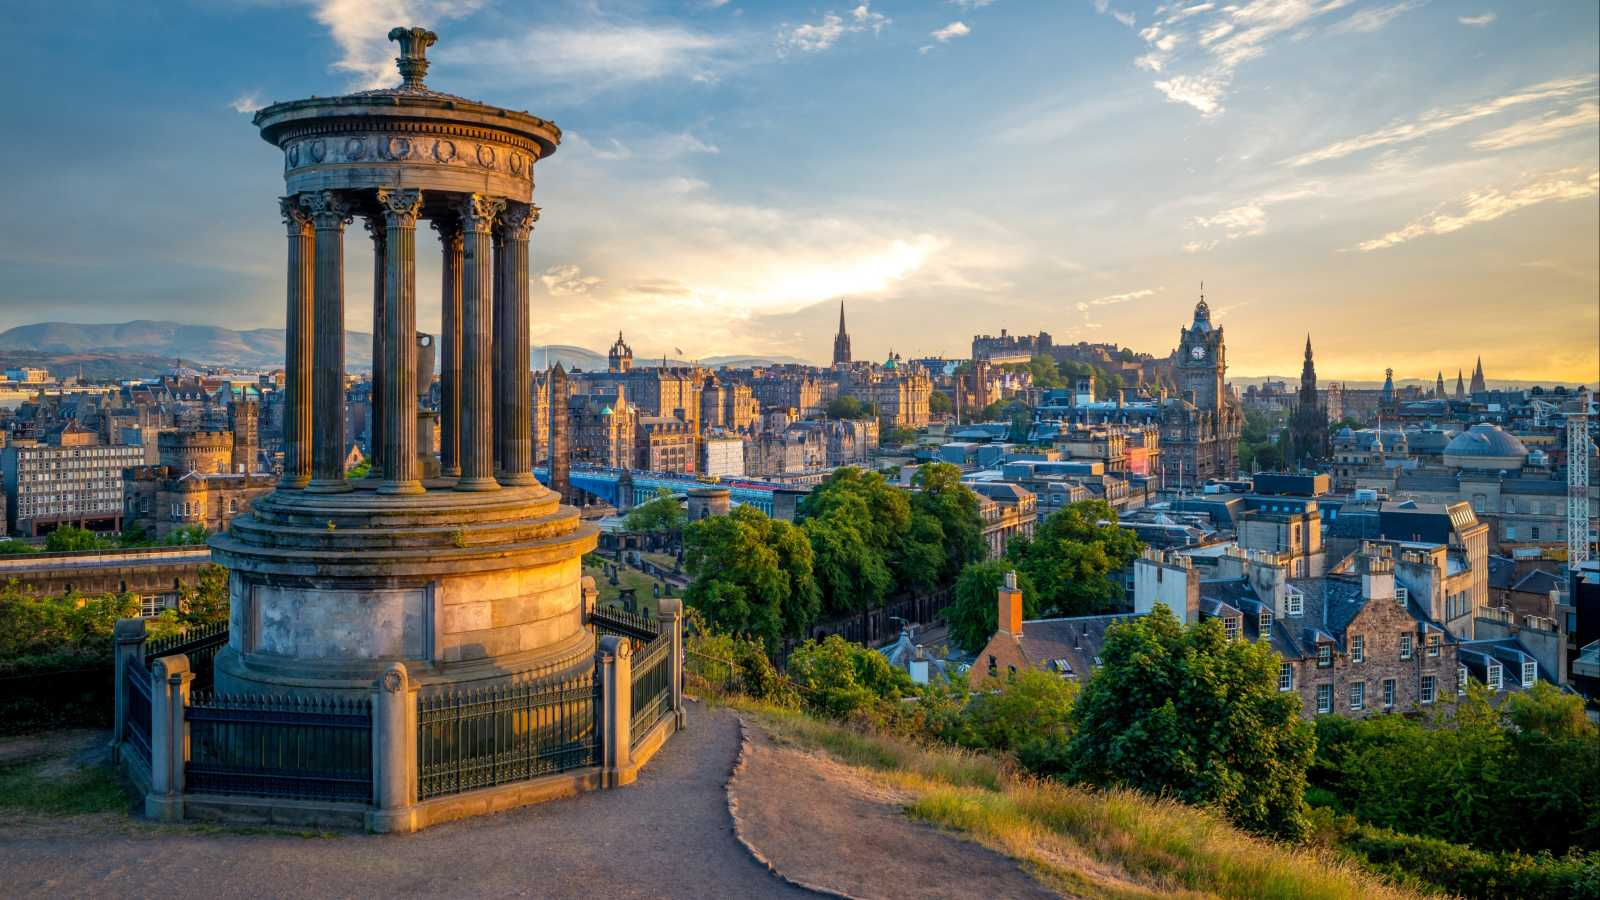 Visit the National Monument in Edinburgh, pictured here, on an Edinburgh vacation